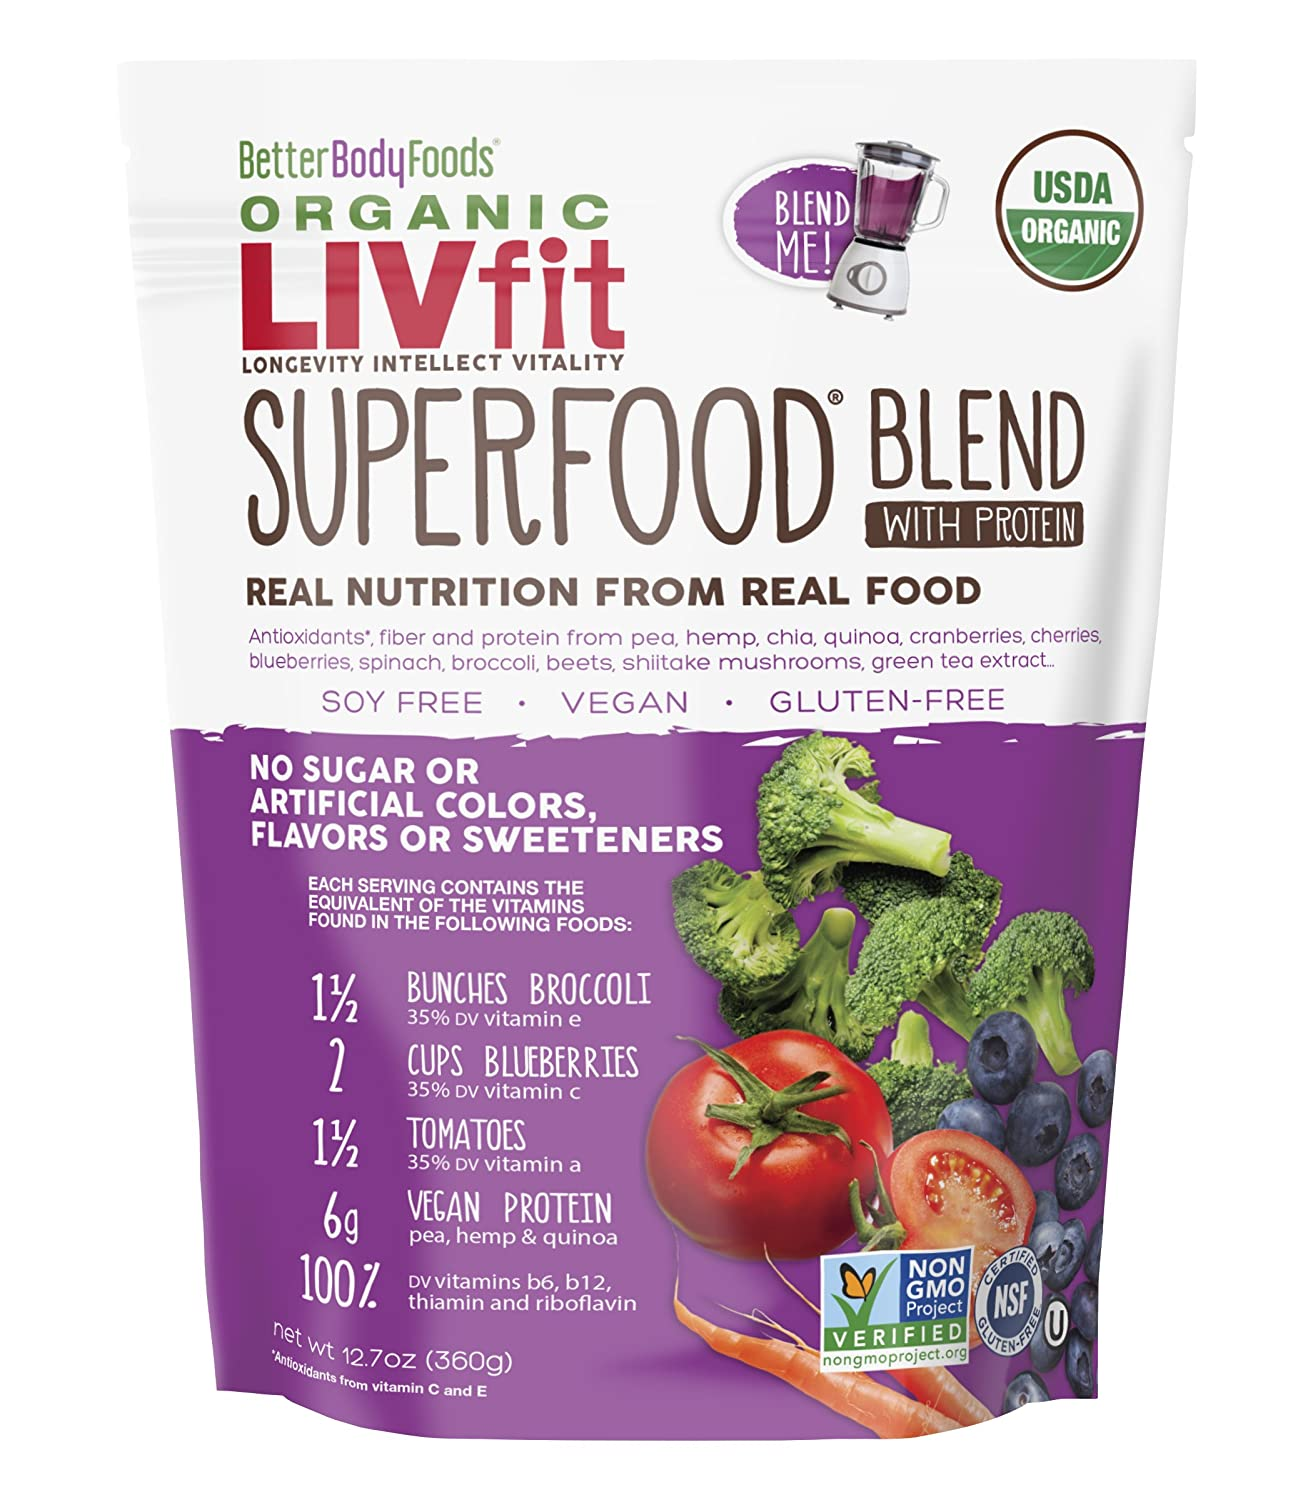 Better Body Foods Organic Livfit Superfood Blend with Protein